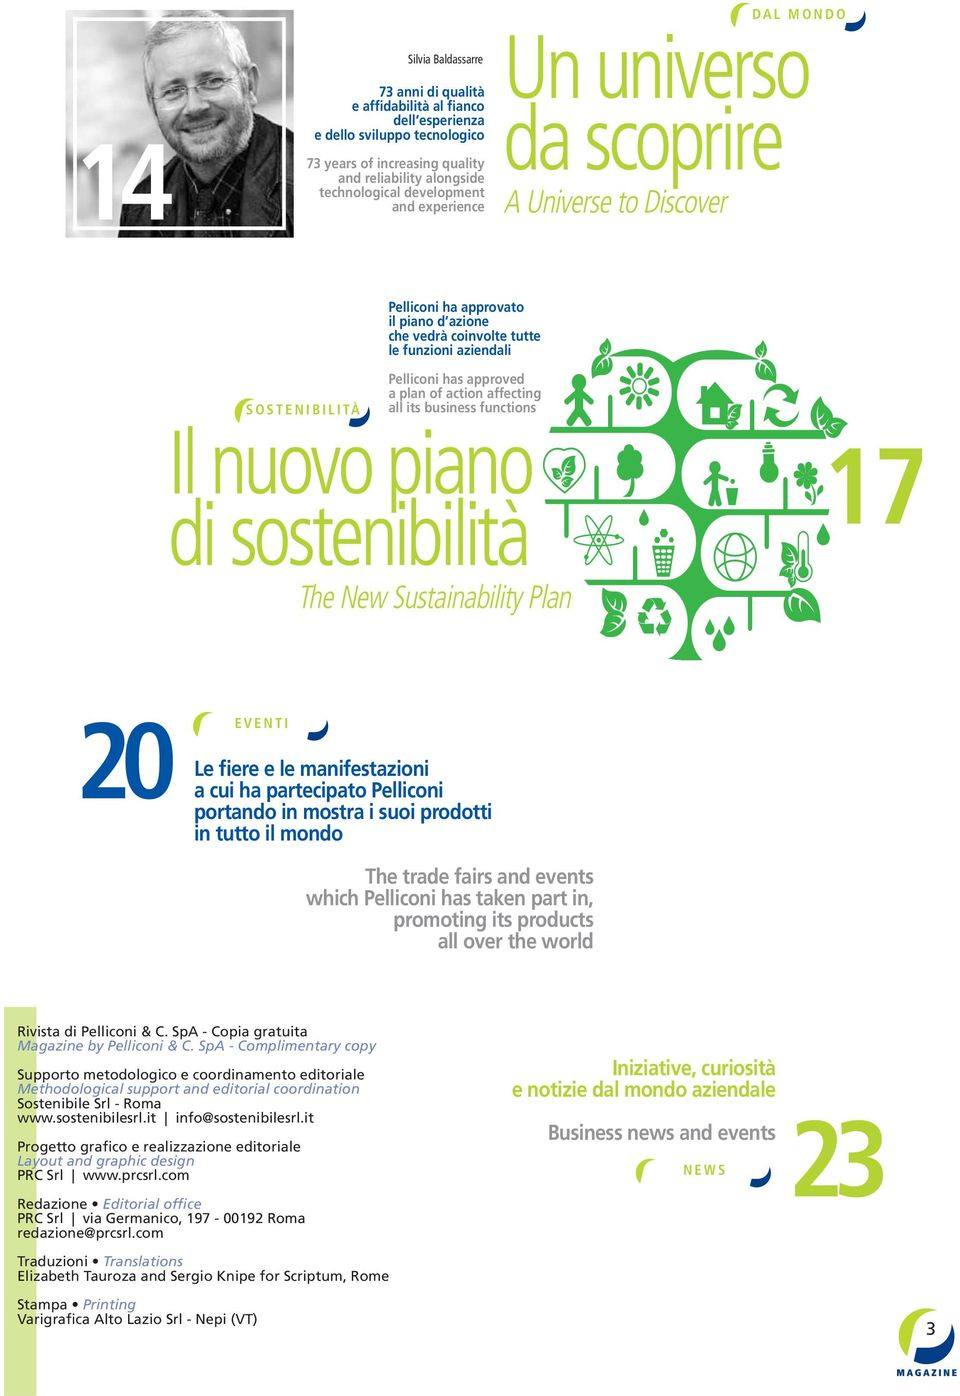 plan of action affecting all its business functions Il nuovo piano di sostenibilità The New Sustainability Plan 17 20 EVENTI Le fiere e le manifestazioni a cui ha partecipato Pelliconi portando in